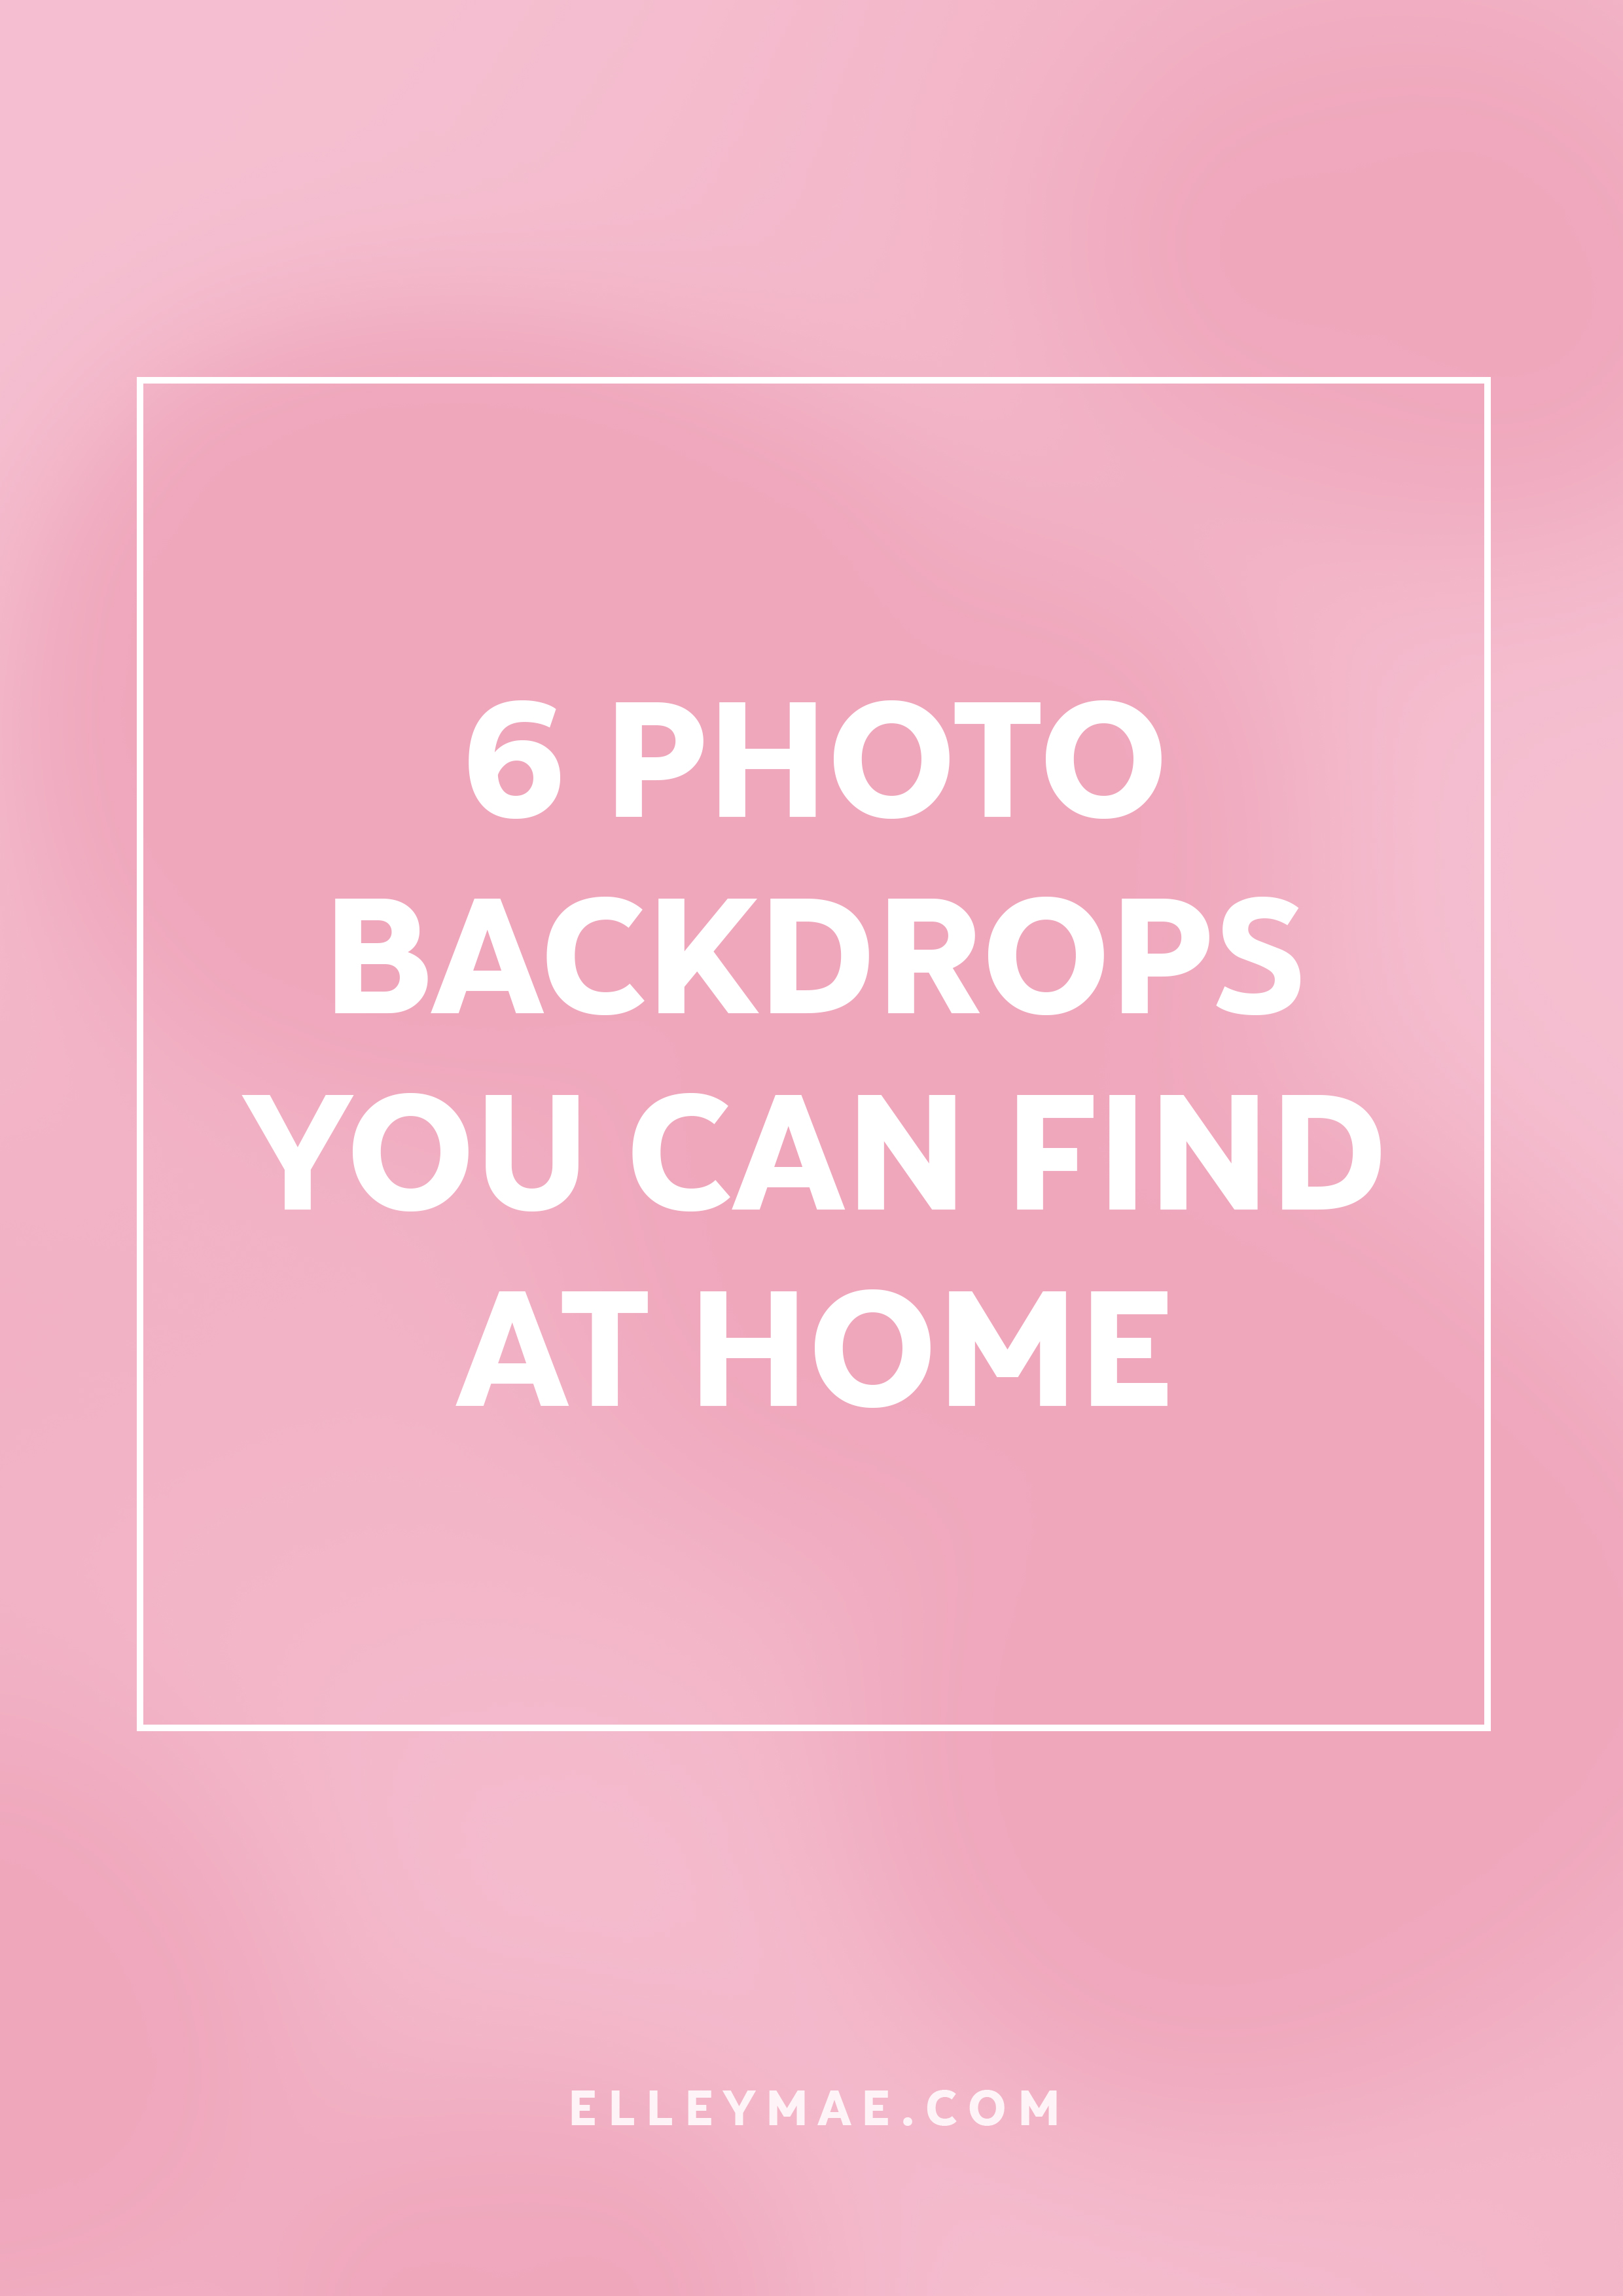 A List of The Best Backdrops for Flatlays | Grow your blog with professional photography for both products & portraits - Learn how to gain loyal readers with gorgeous photographs using these 6 photo backdrops | Learn more at ElleyMae.com | Blog - Grow Your Blog - Photography Tips - Blog Tips for Beginners - Photography Tips for Beginners